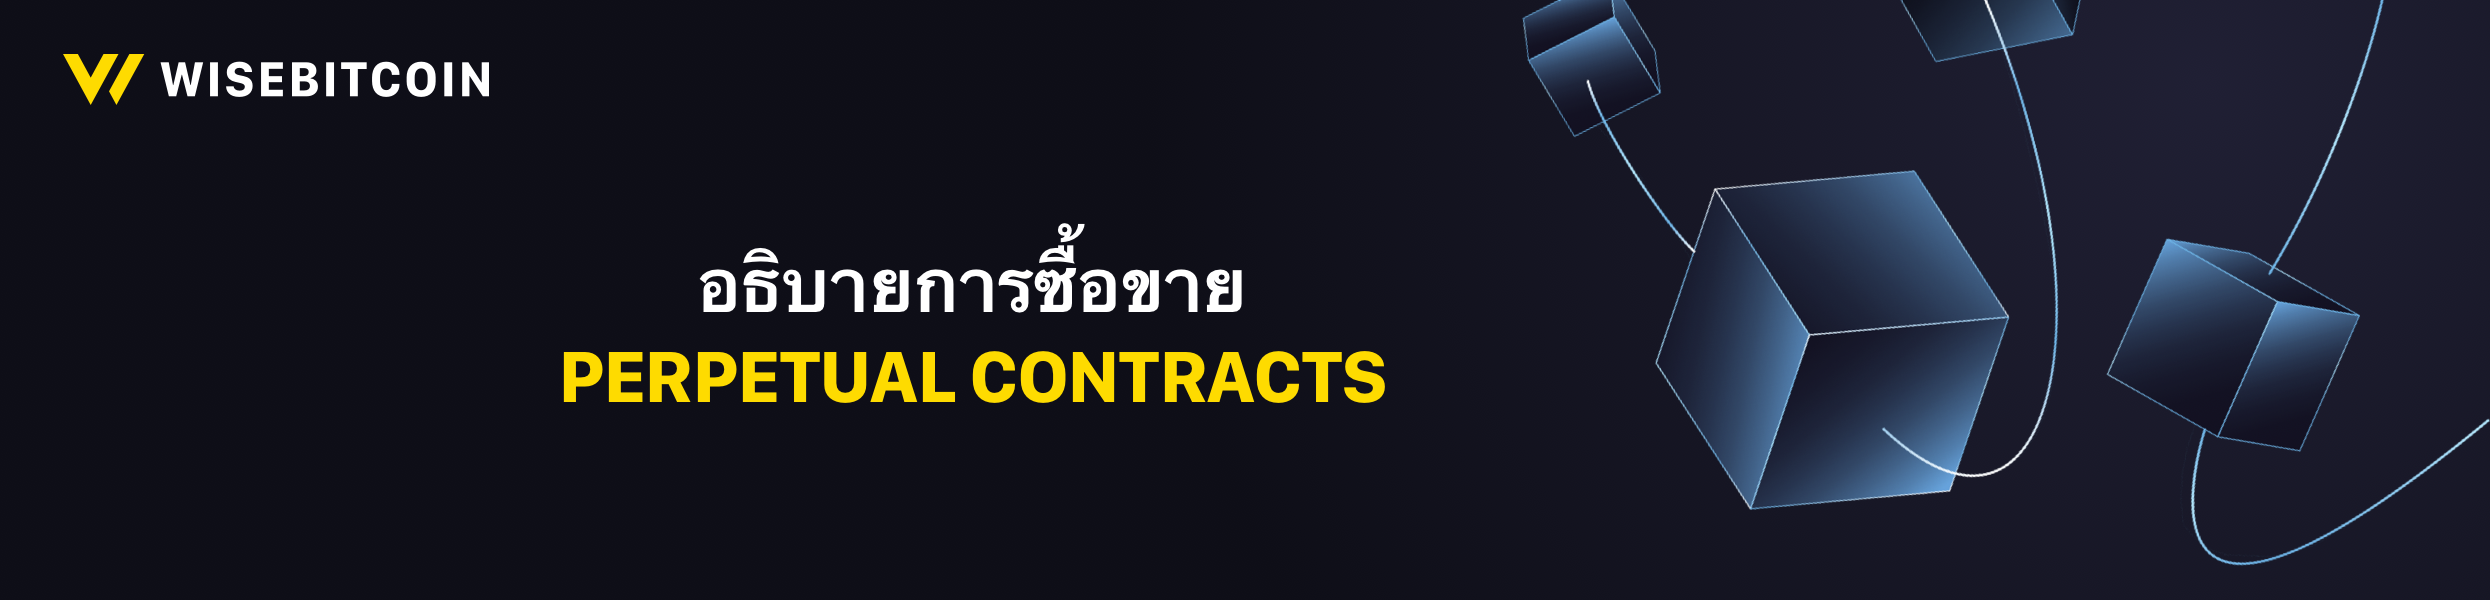 perpetual contracts thai banner